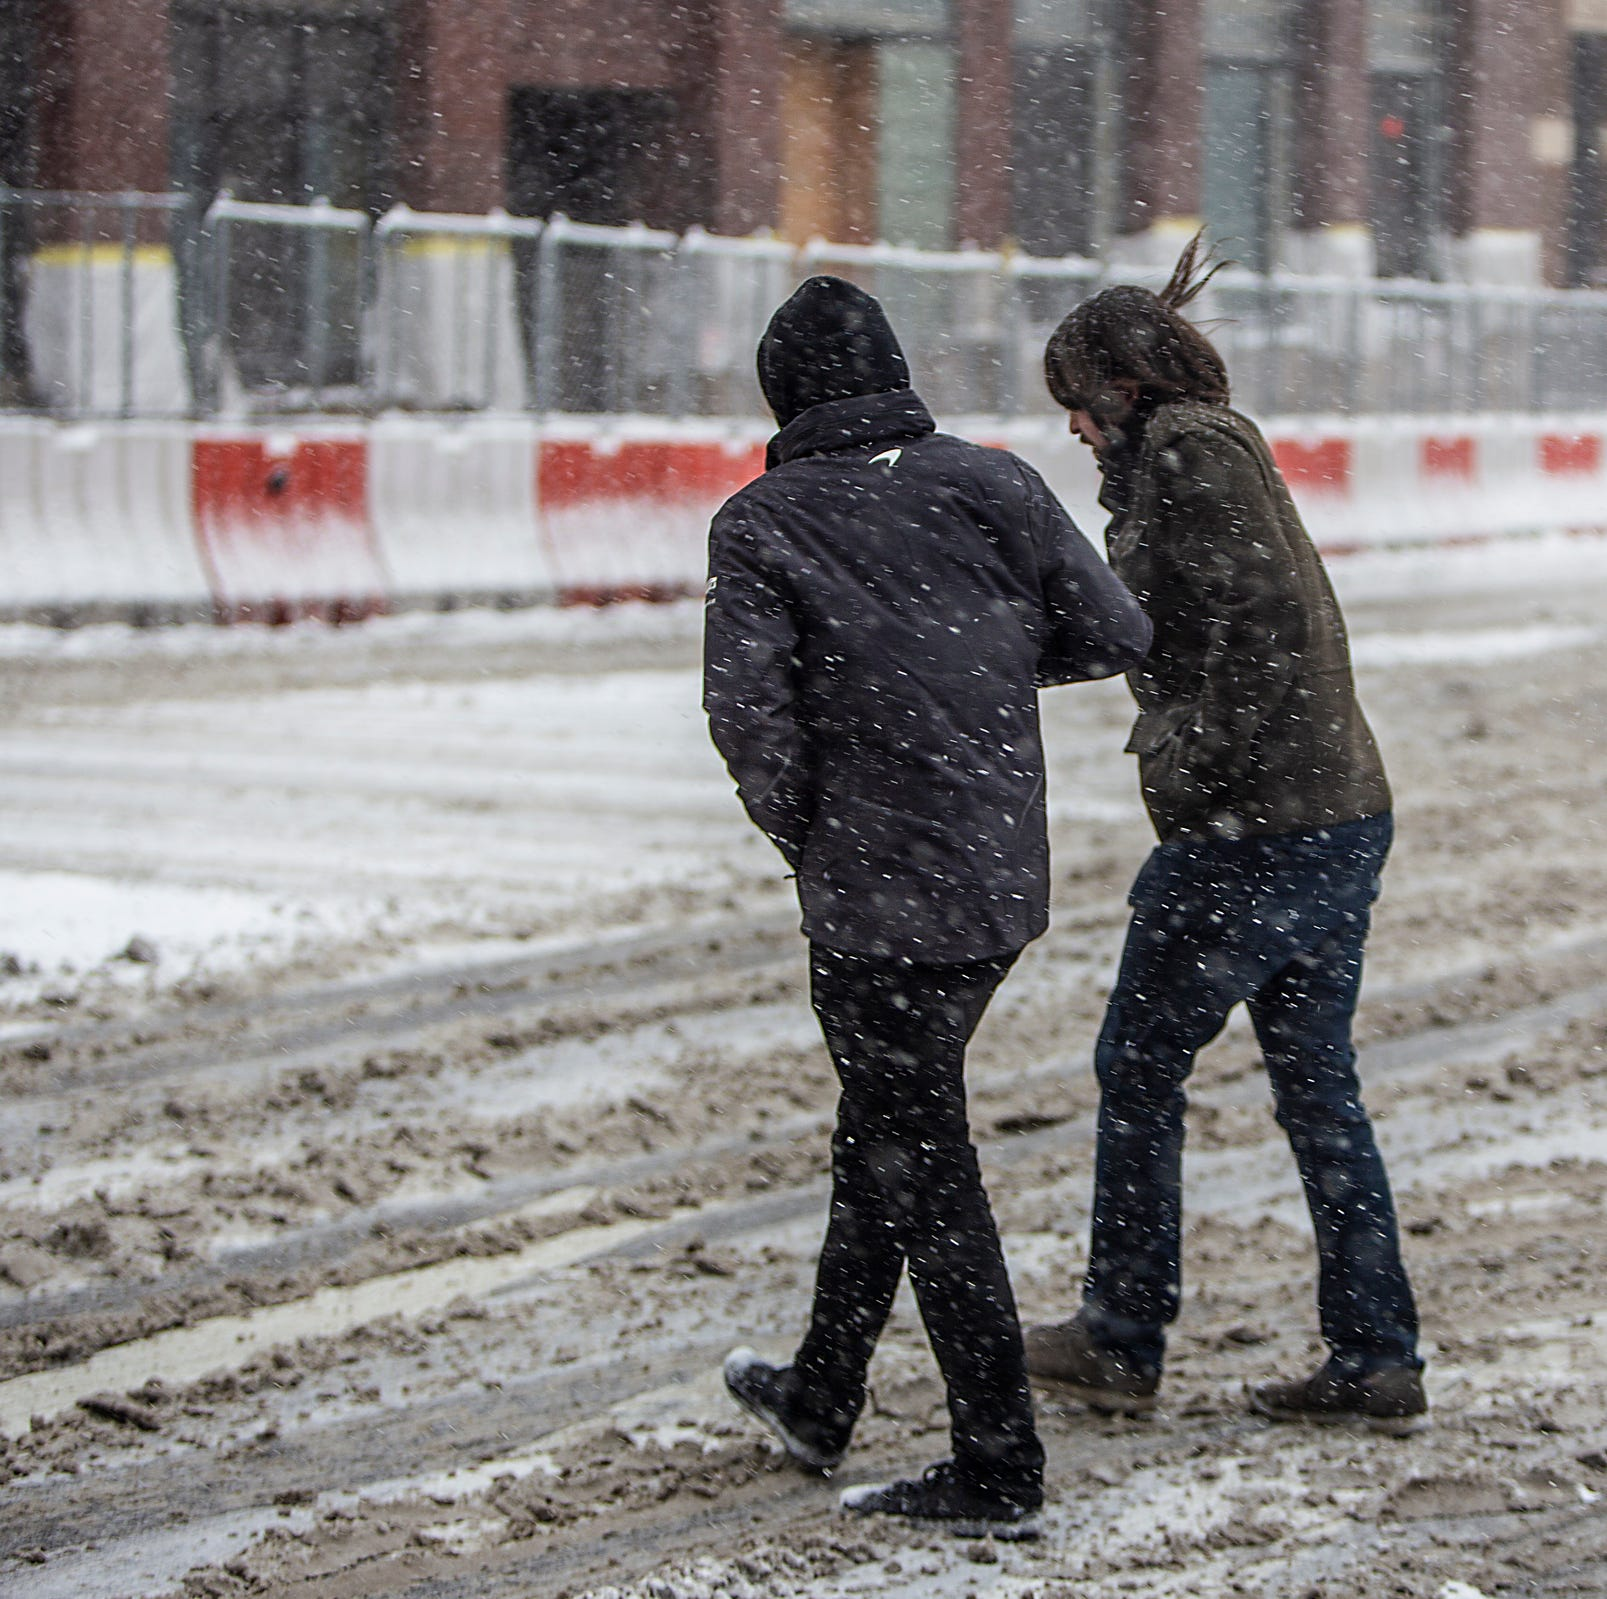 People cross the street in the snow, during the start of the public days at the North American International Auto Show at Cobo Center in downtown Detroit on Saturday, Jan. 19, 2019.